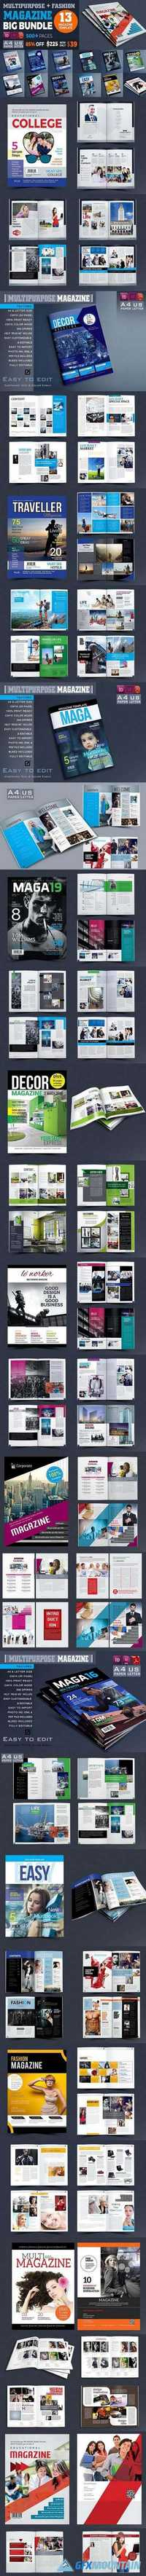 Magazine Bundle_13 Template_V01 1120908